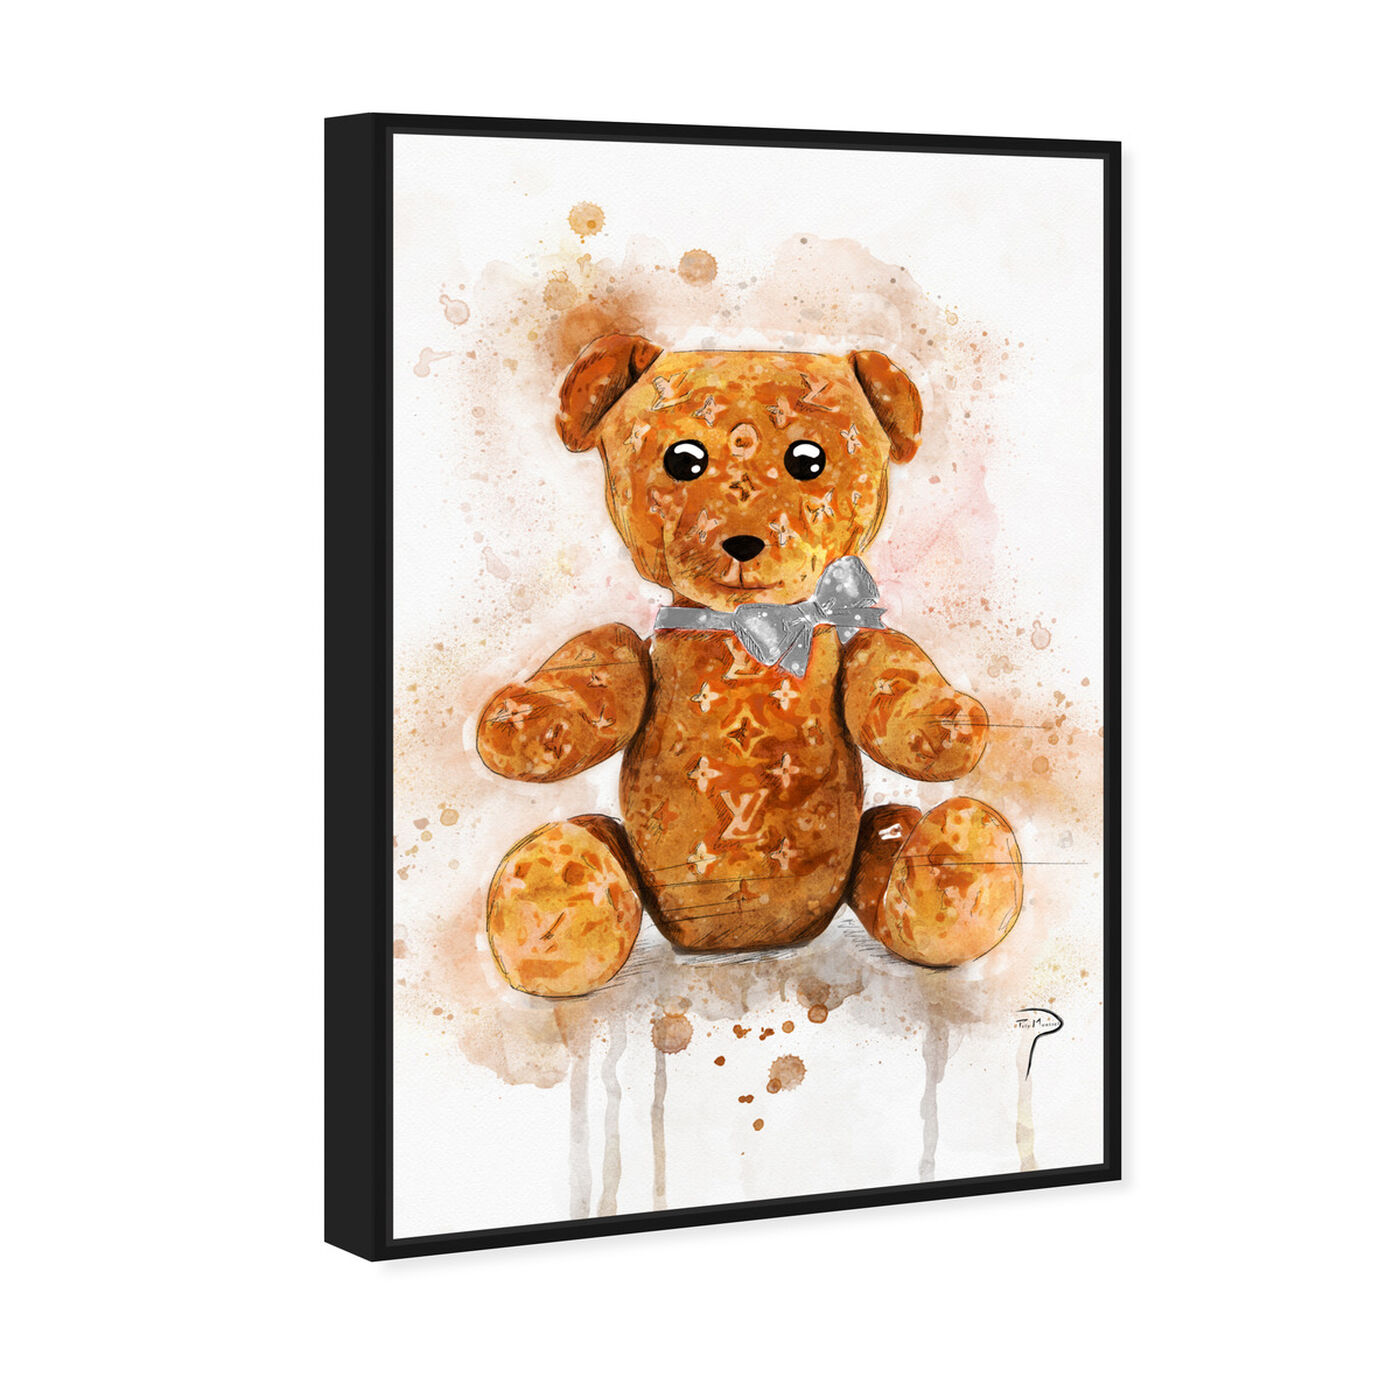 Angled view of Pily Montiel - Teddy Bear featuring symbols and objects and toys art.